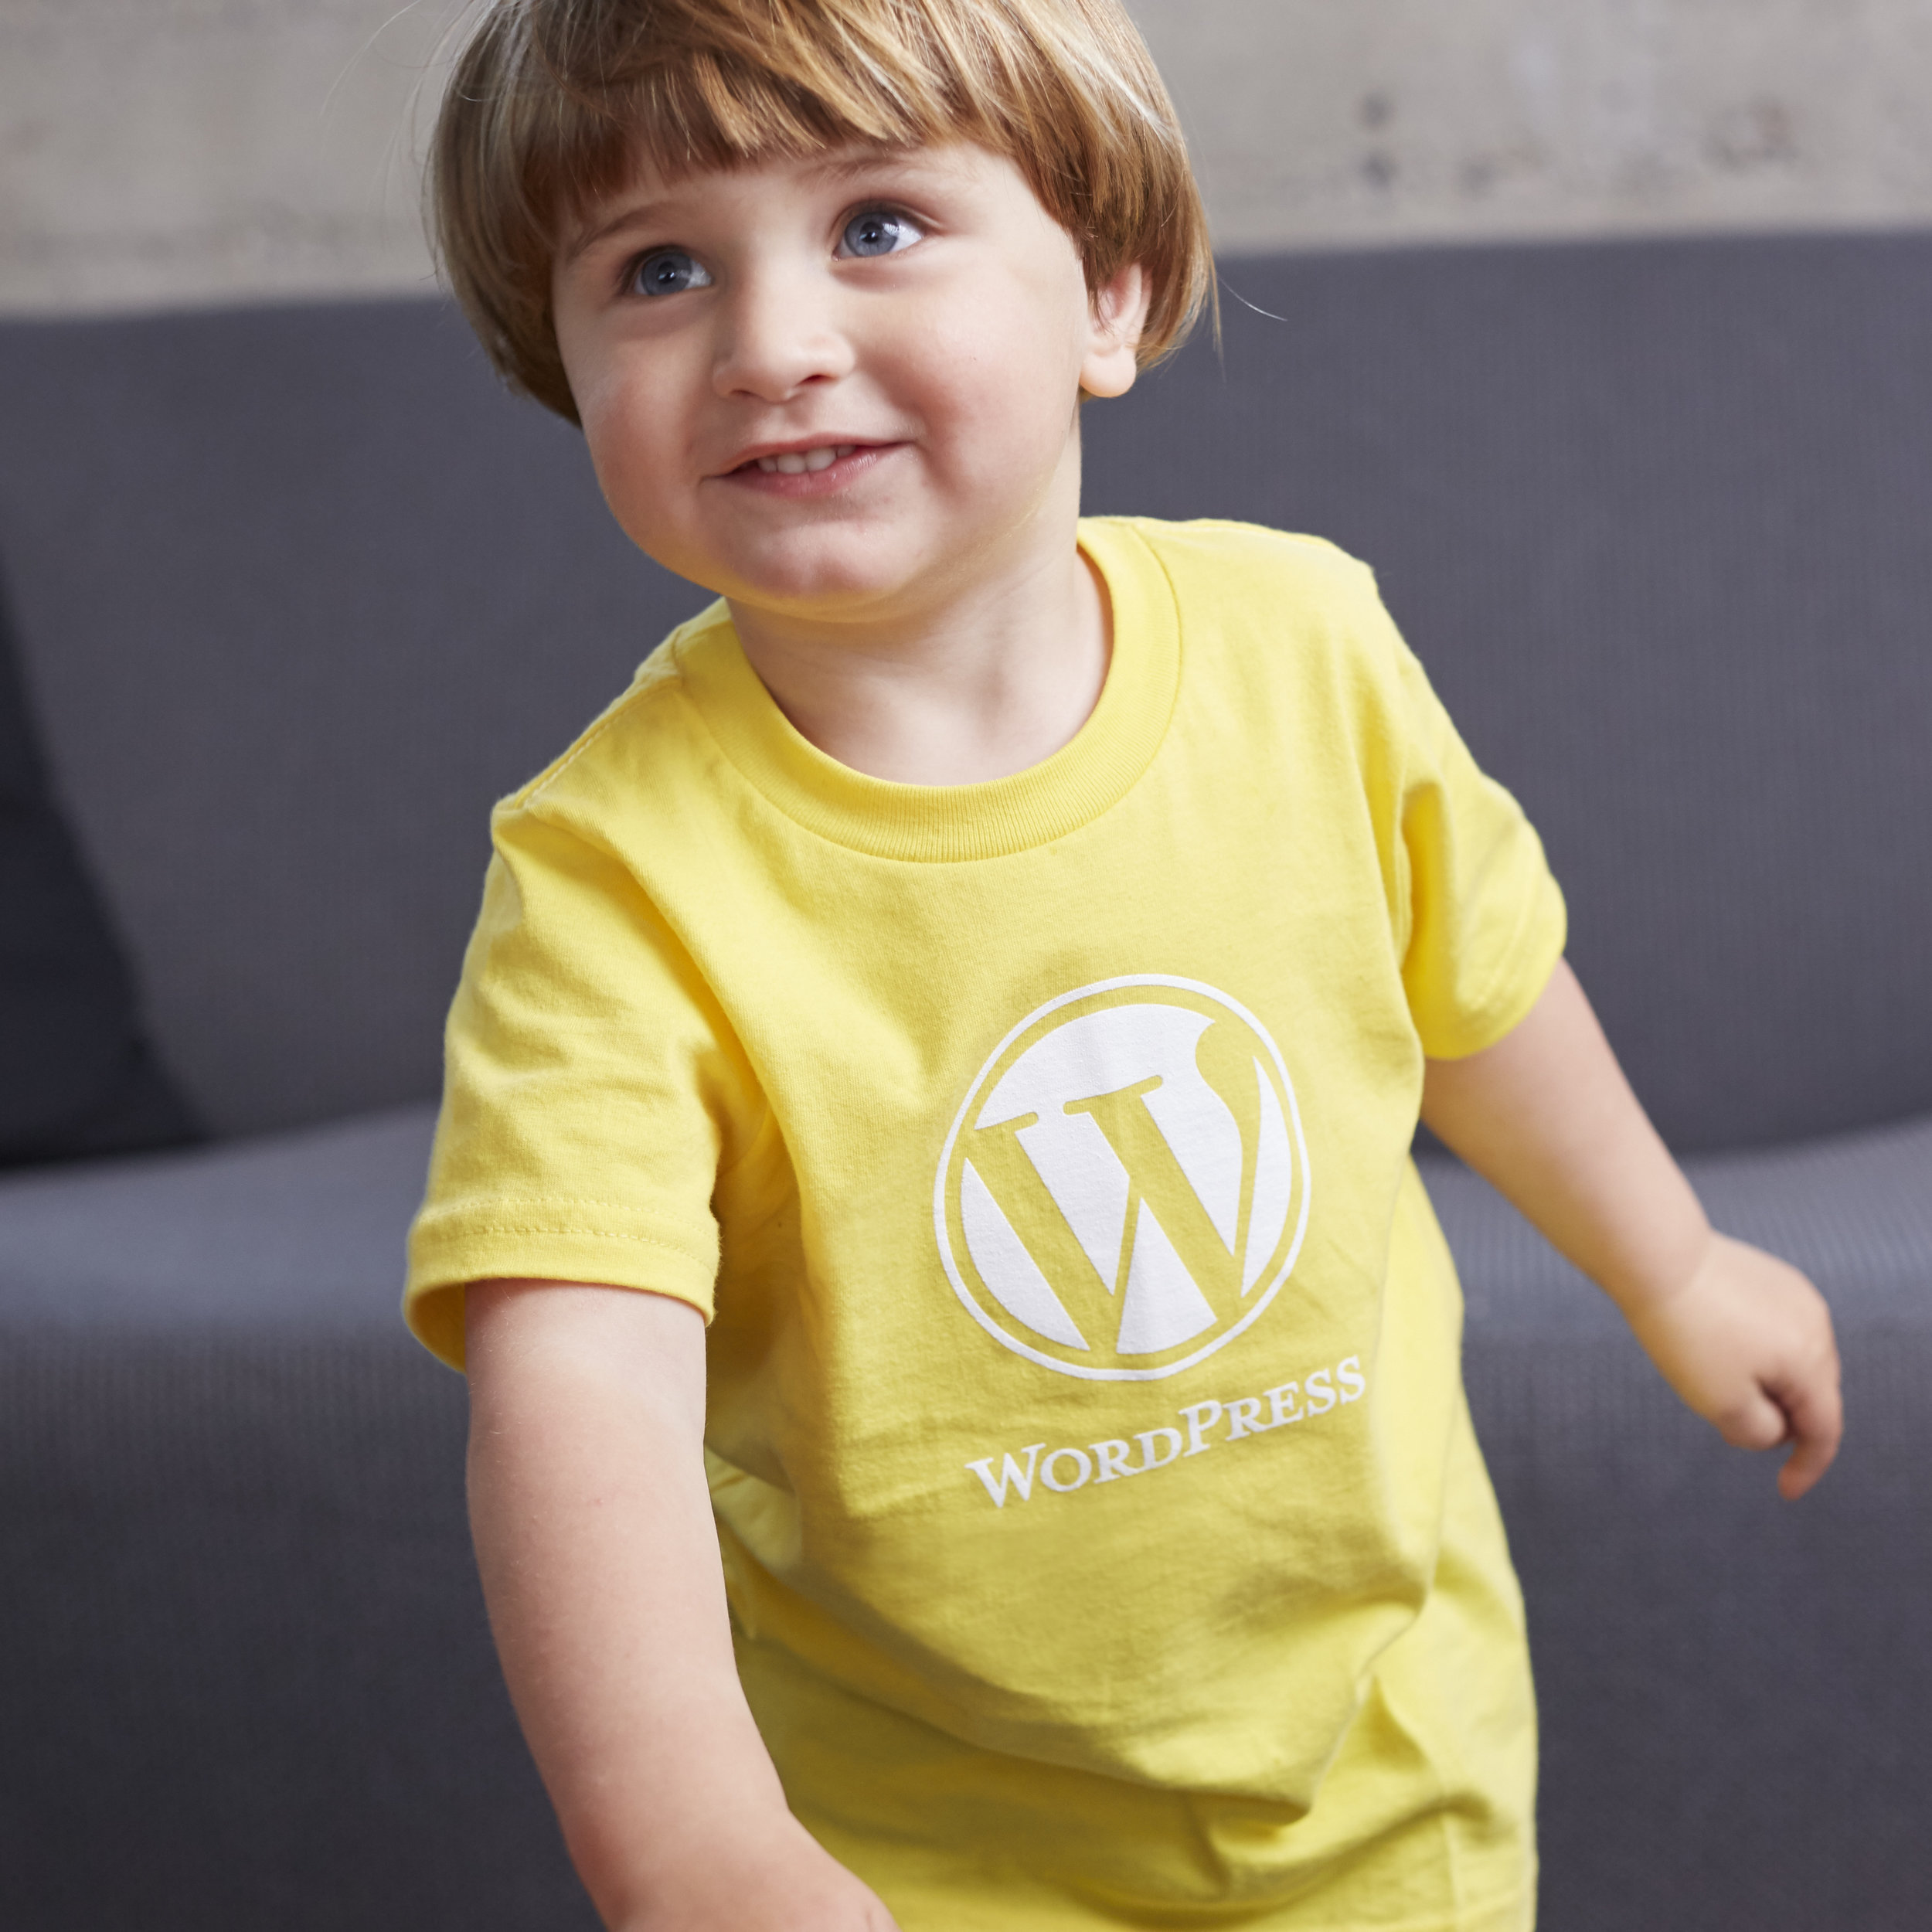 Wordpress+-+2016.04.27+-+Store+Shoot+-+13432.jpg